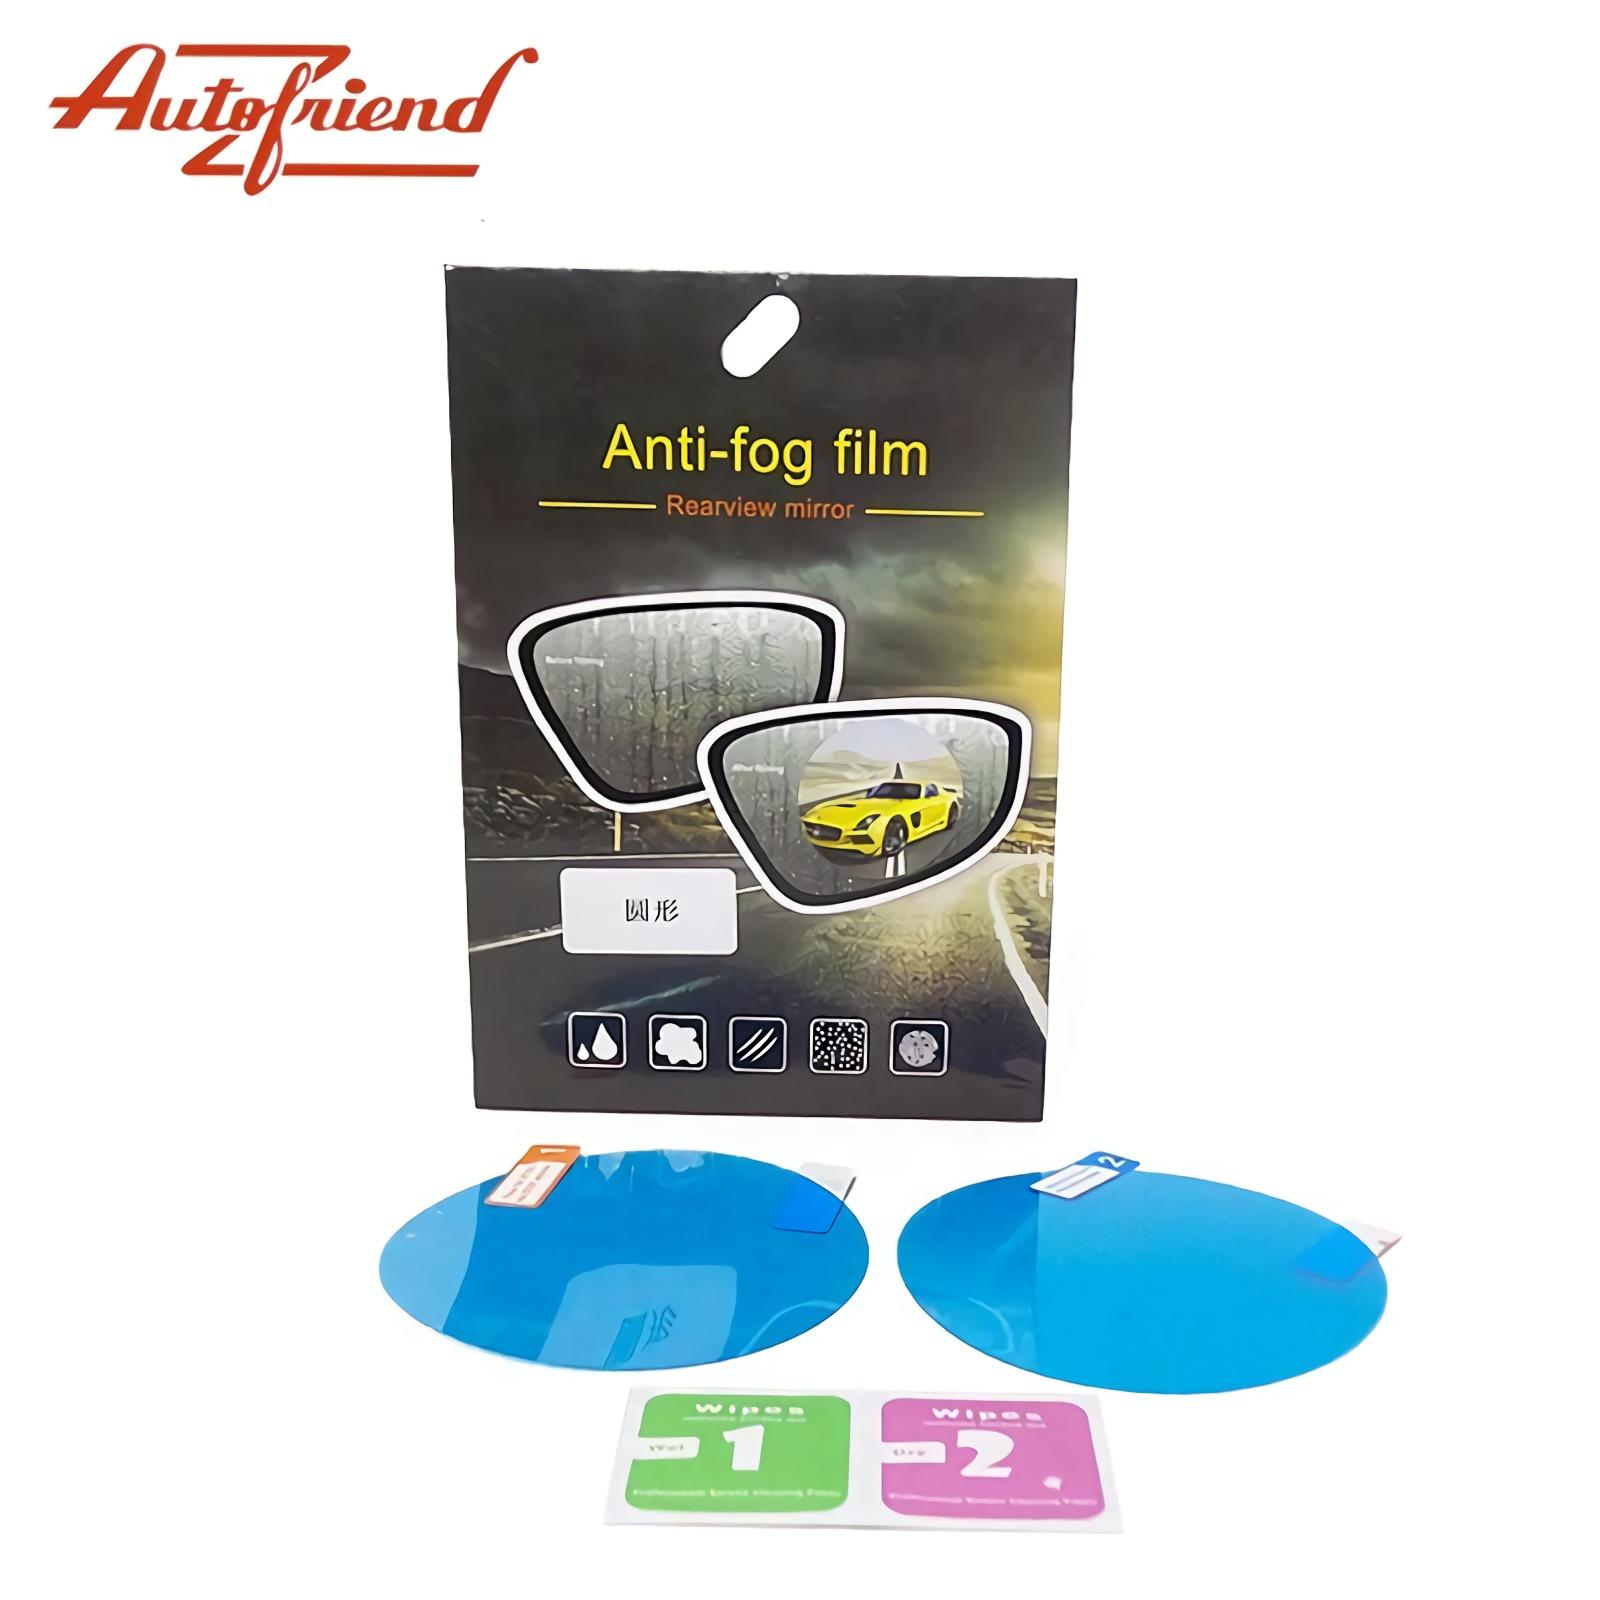 AUTOFRIEND Sticker Kaca Spion Bulat Anti Air & Embun 2 Pcs Anti Fog Film AI